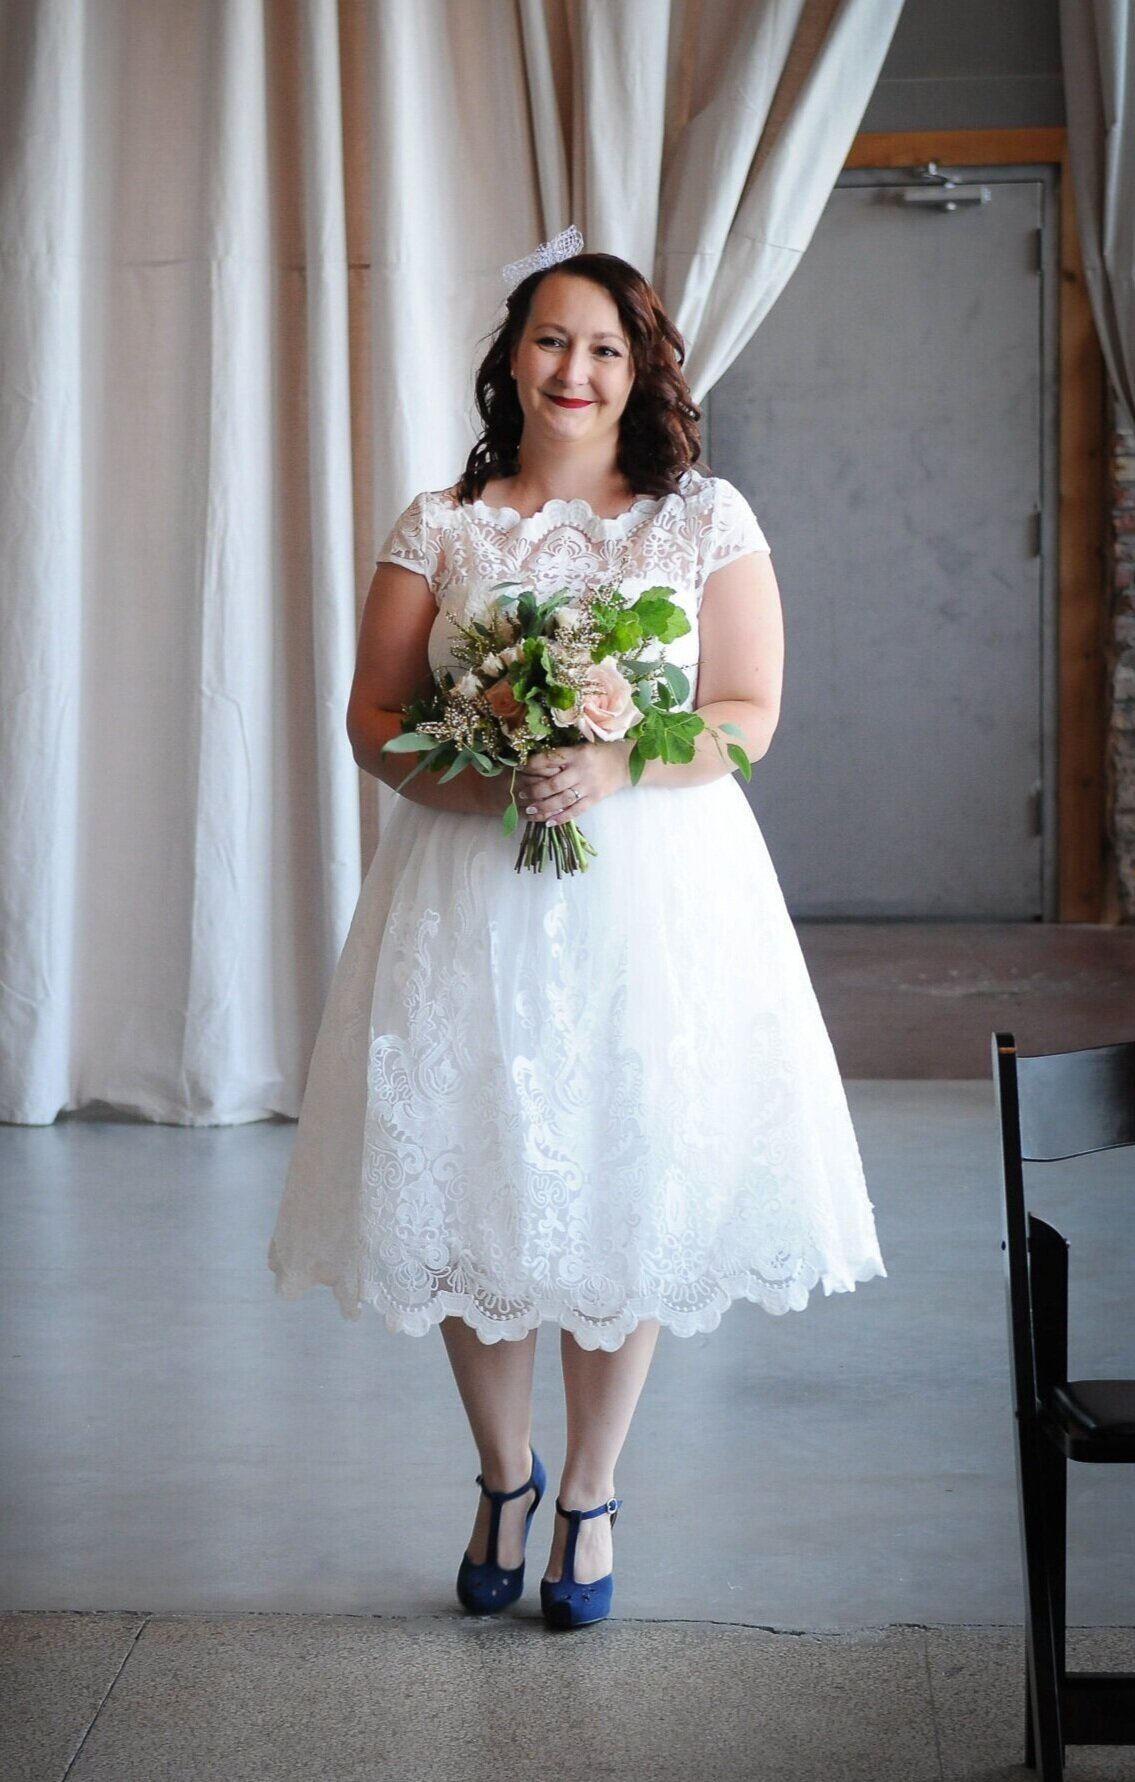 This old-school-cool bride, Heather, looks like she's bursting with happiness and she takes her solo walk down the aisle (in the most amazing vintage dress)!